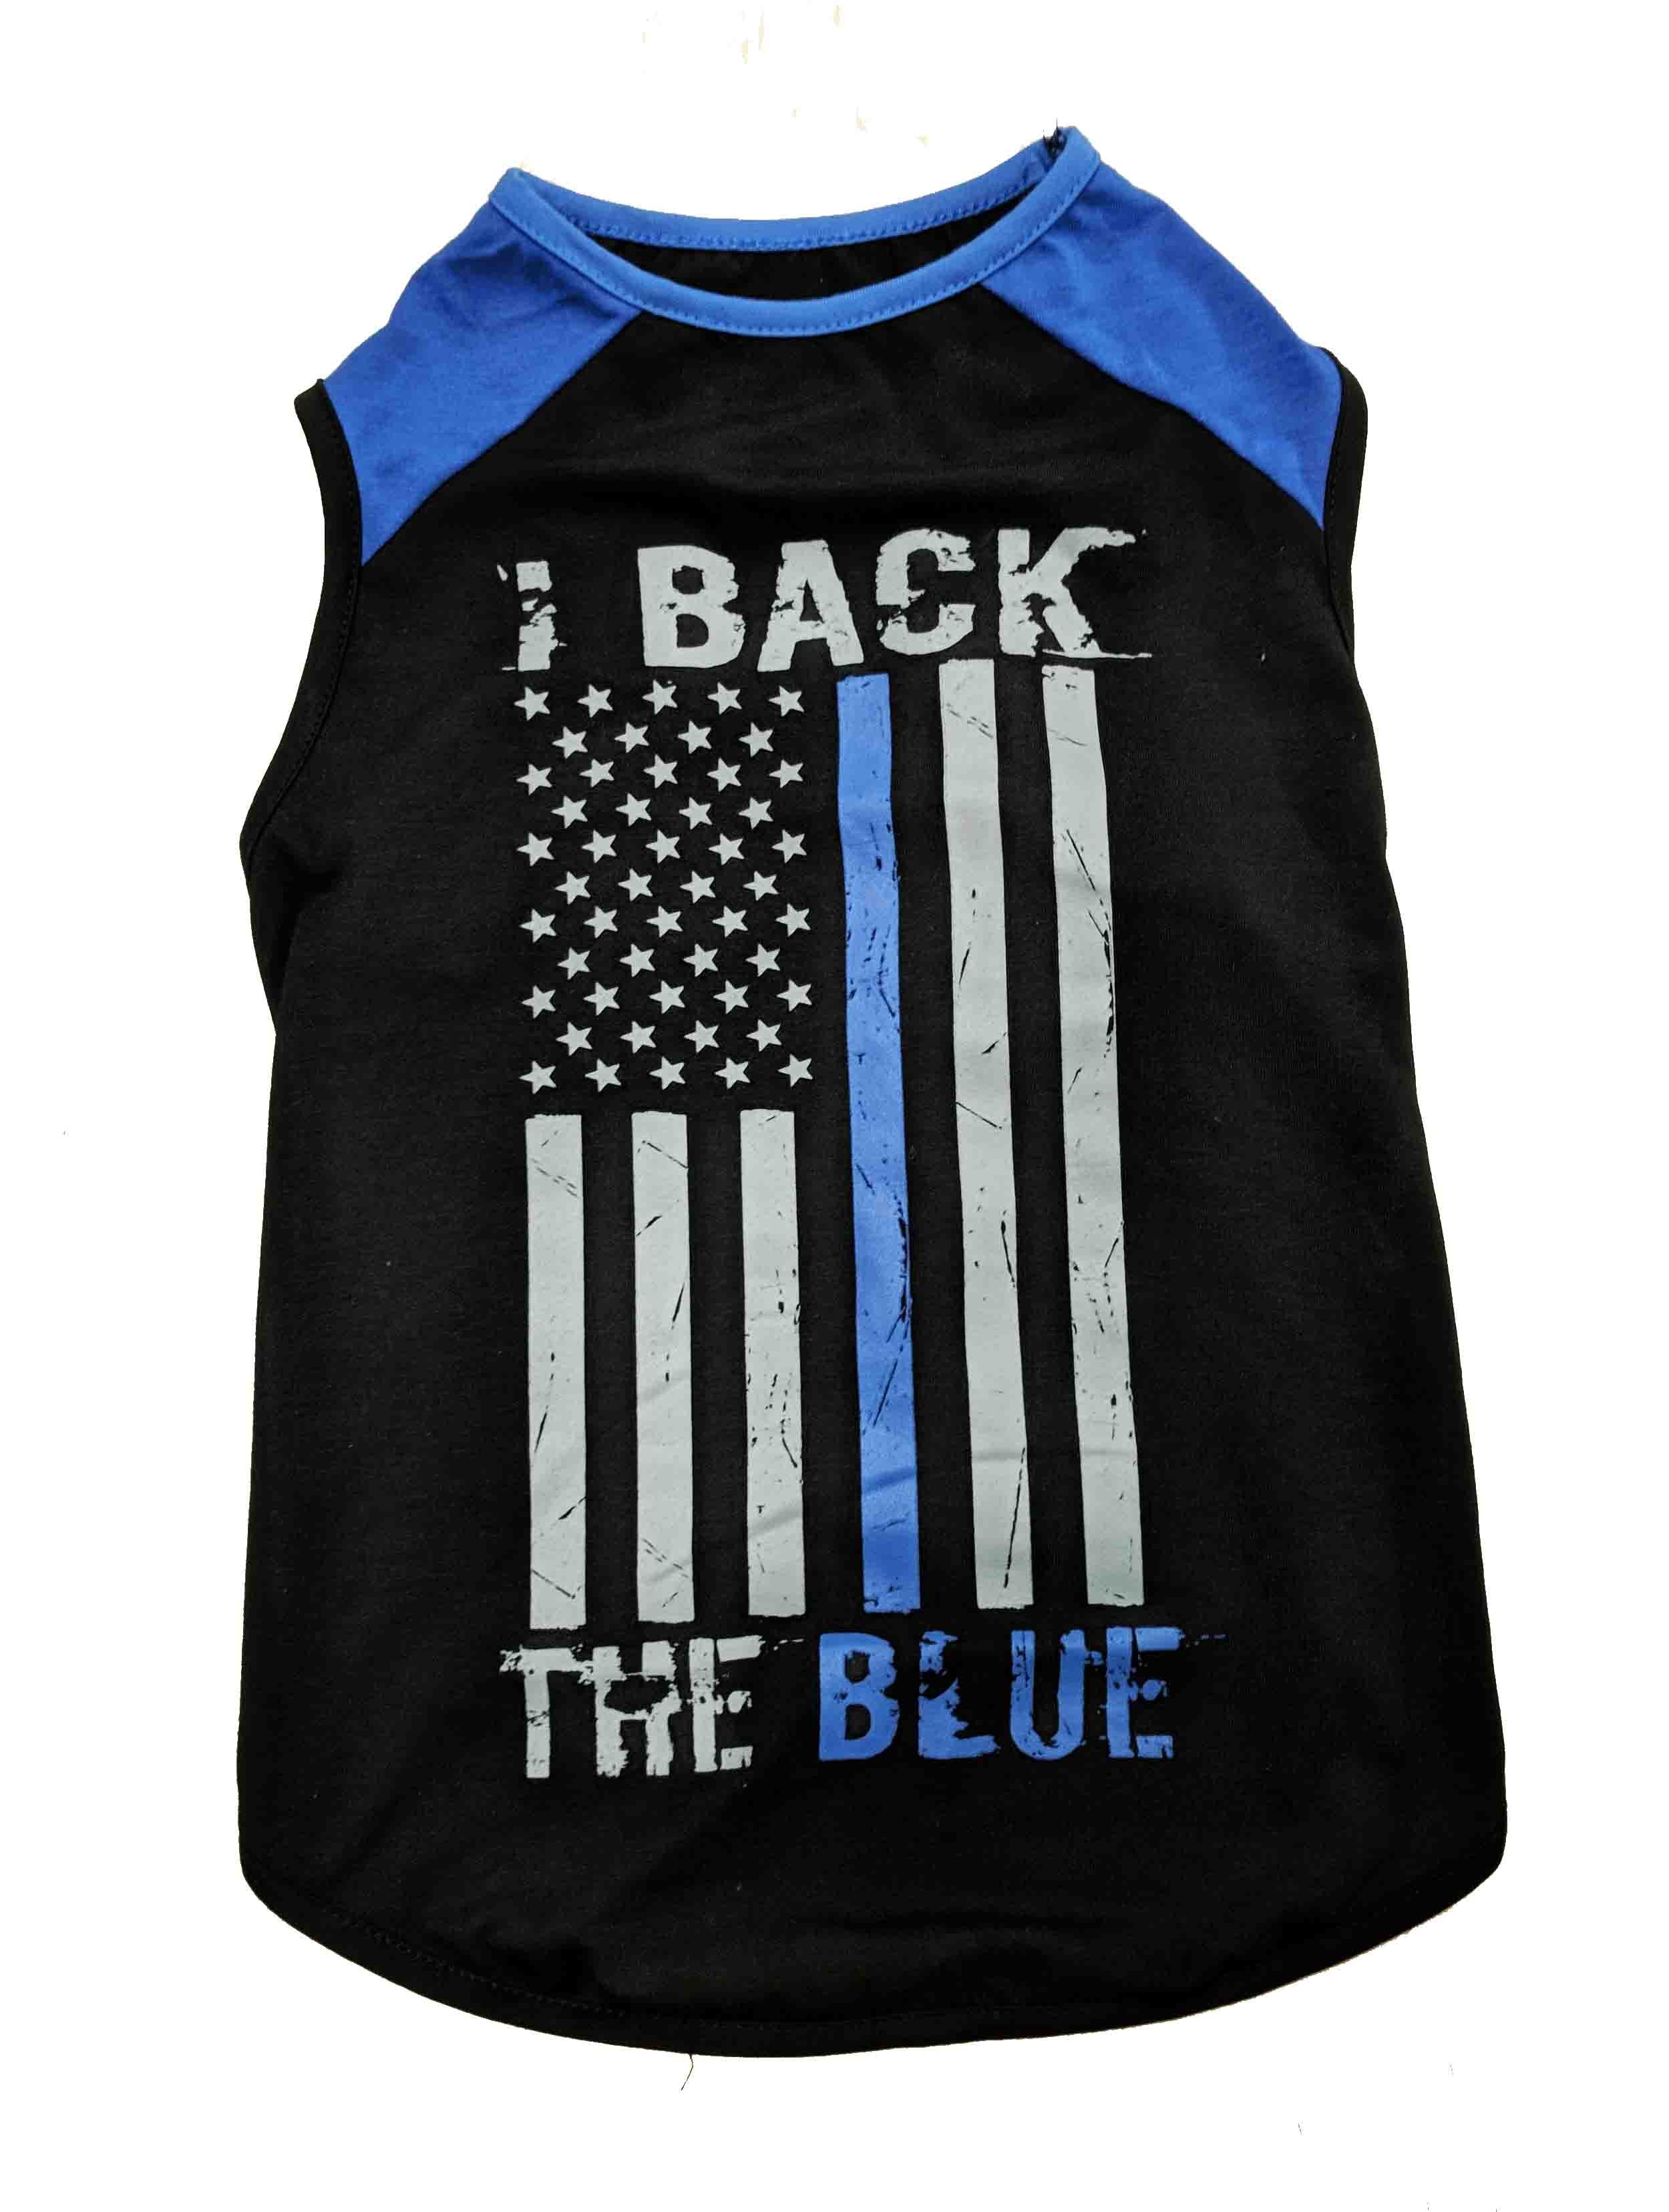 new styles d4b98 0750c Thin Blue Line USA - Official Site - Shop Gifts, Flags ...